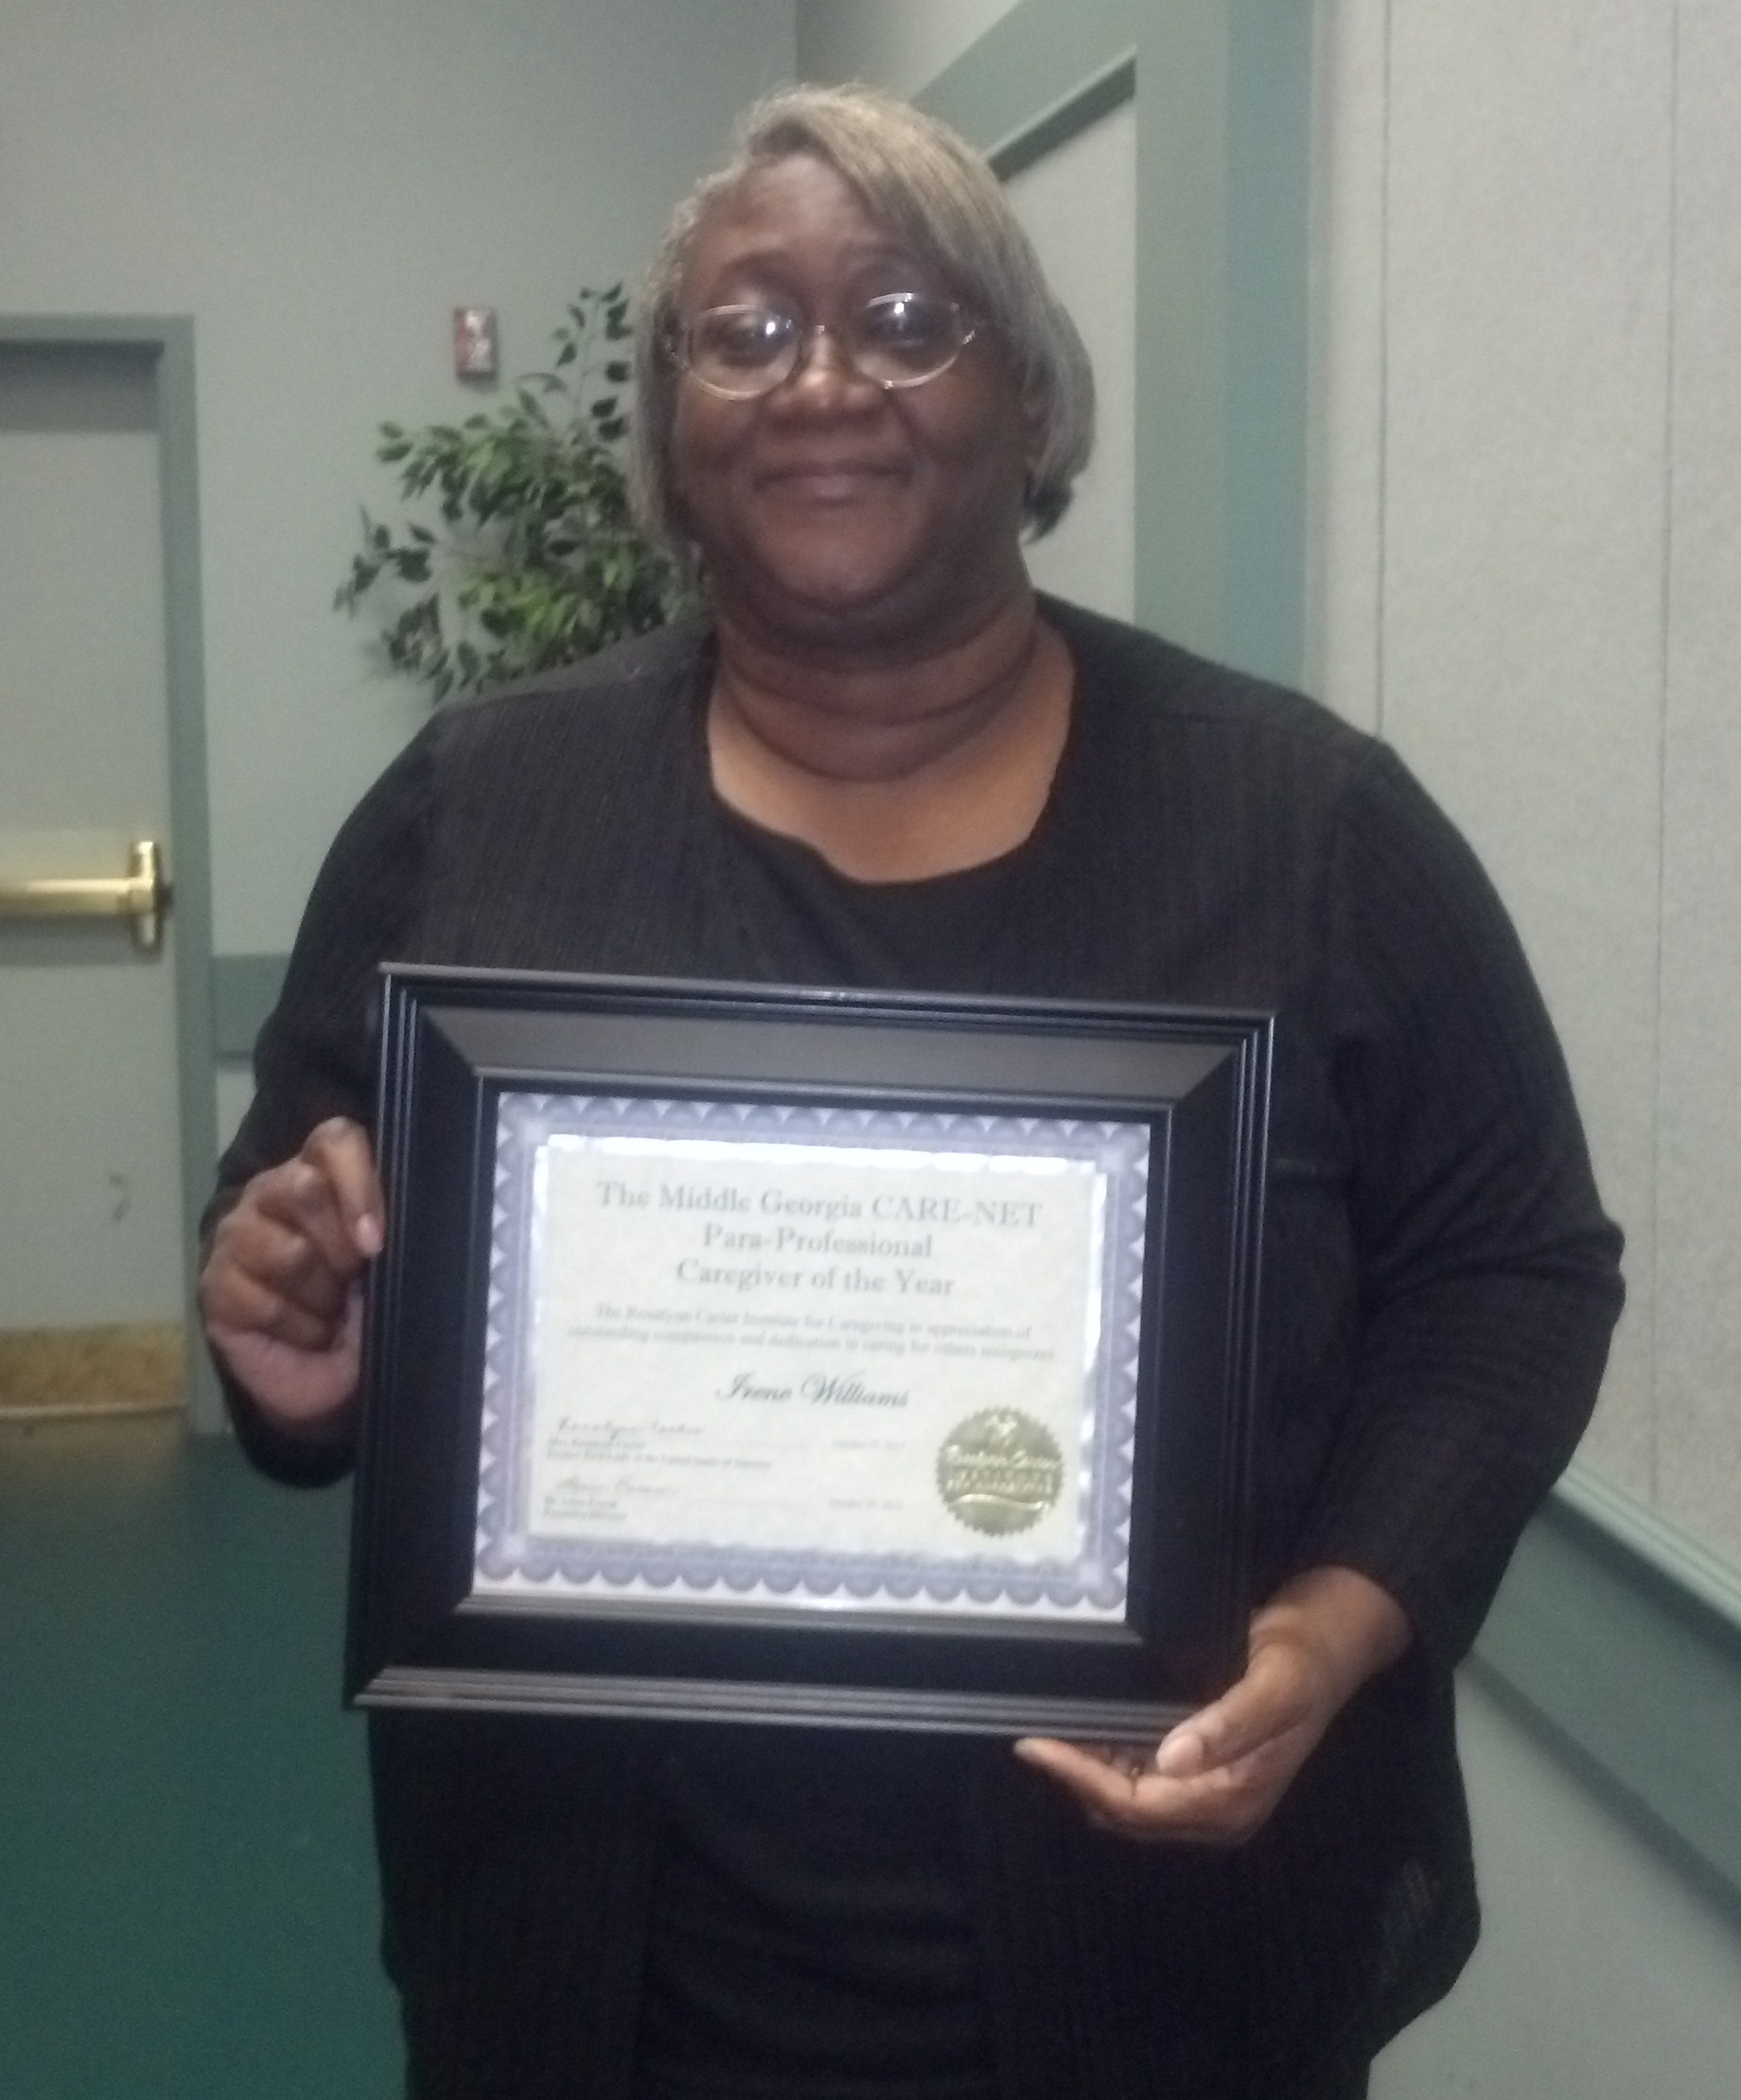 River edges williams named care net para professional caregiver river edges williams named care net para professional caregiver of the year xflitez Image collections